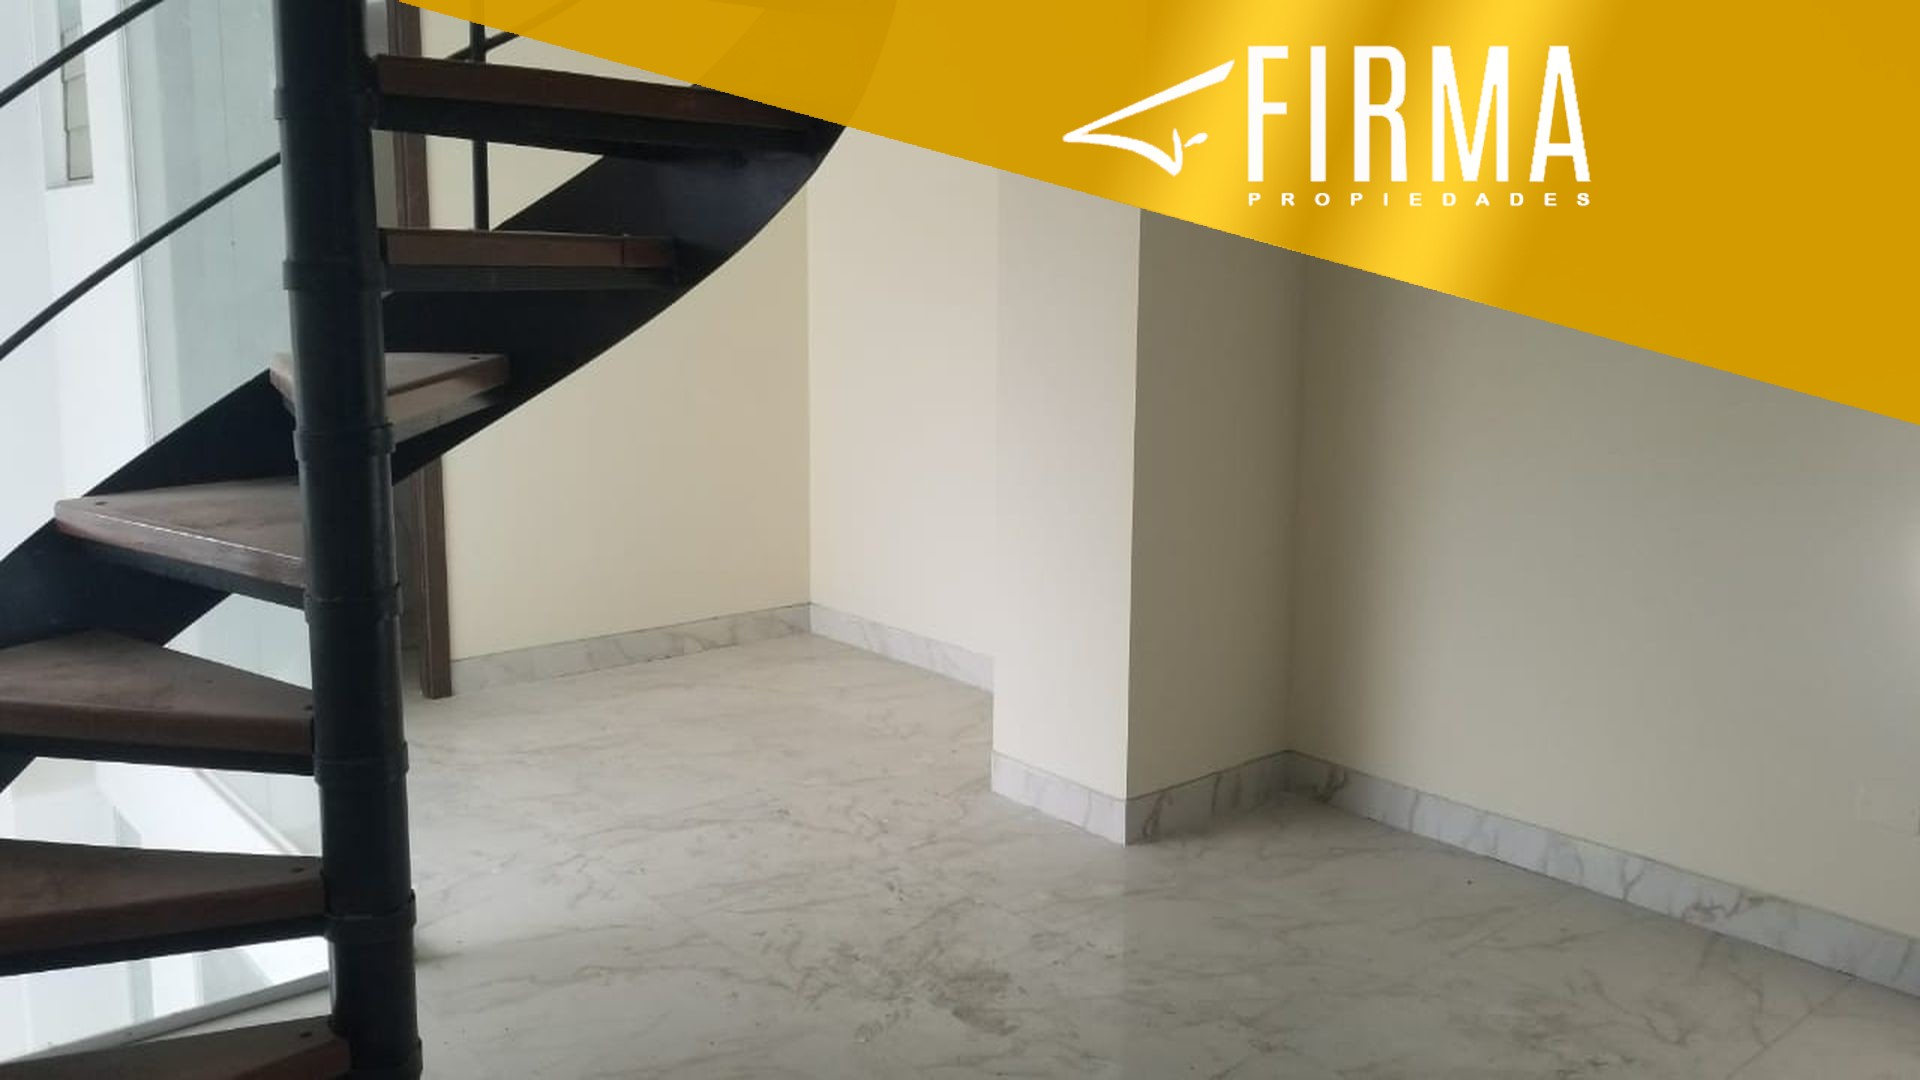 Local comercial en Venta FLV53030 – COMPRA TU LOCAL EN SAN MIGUEL Foto 2